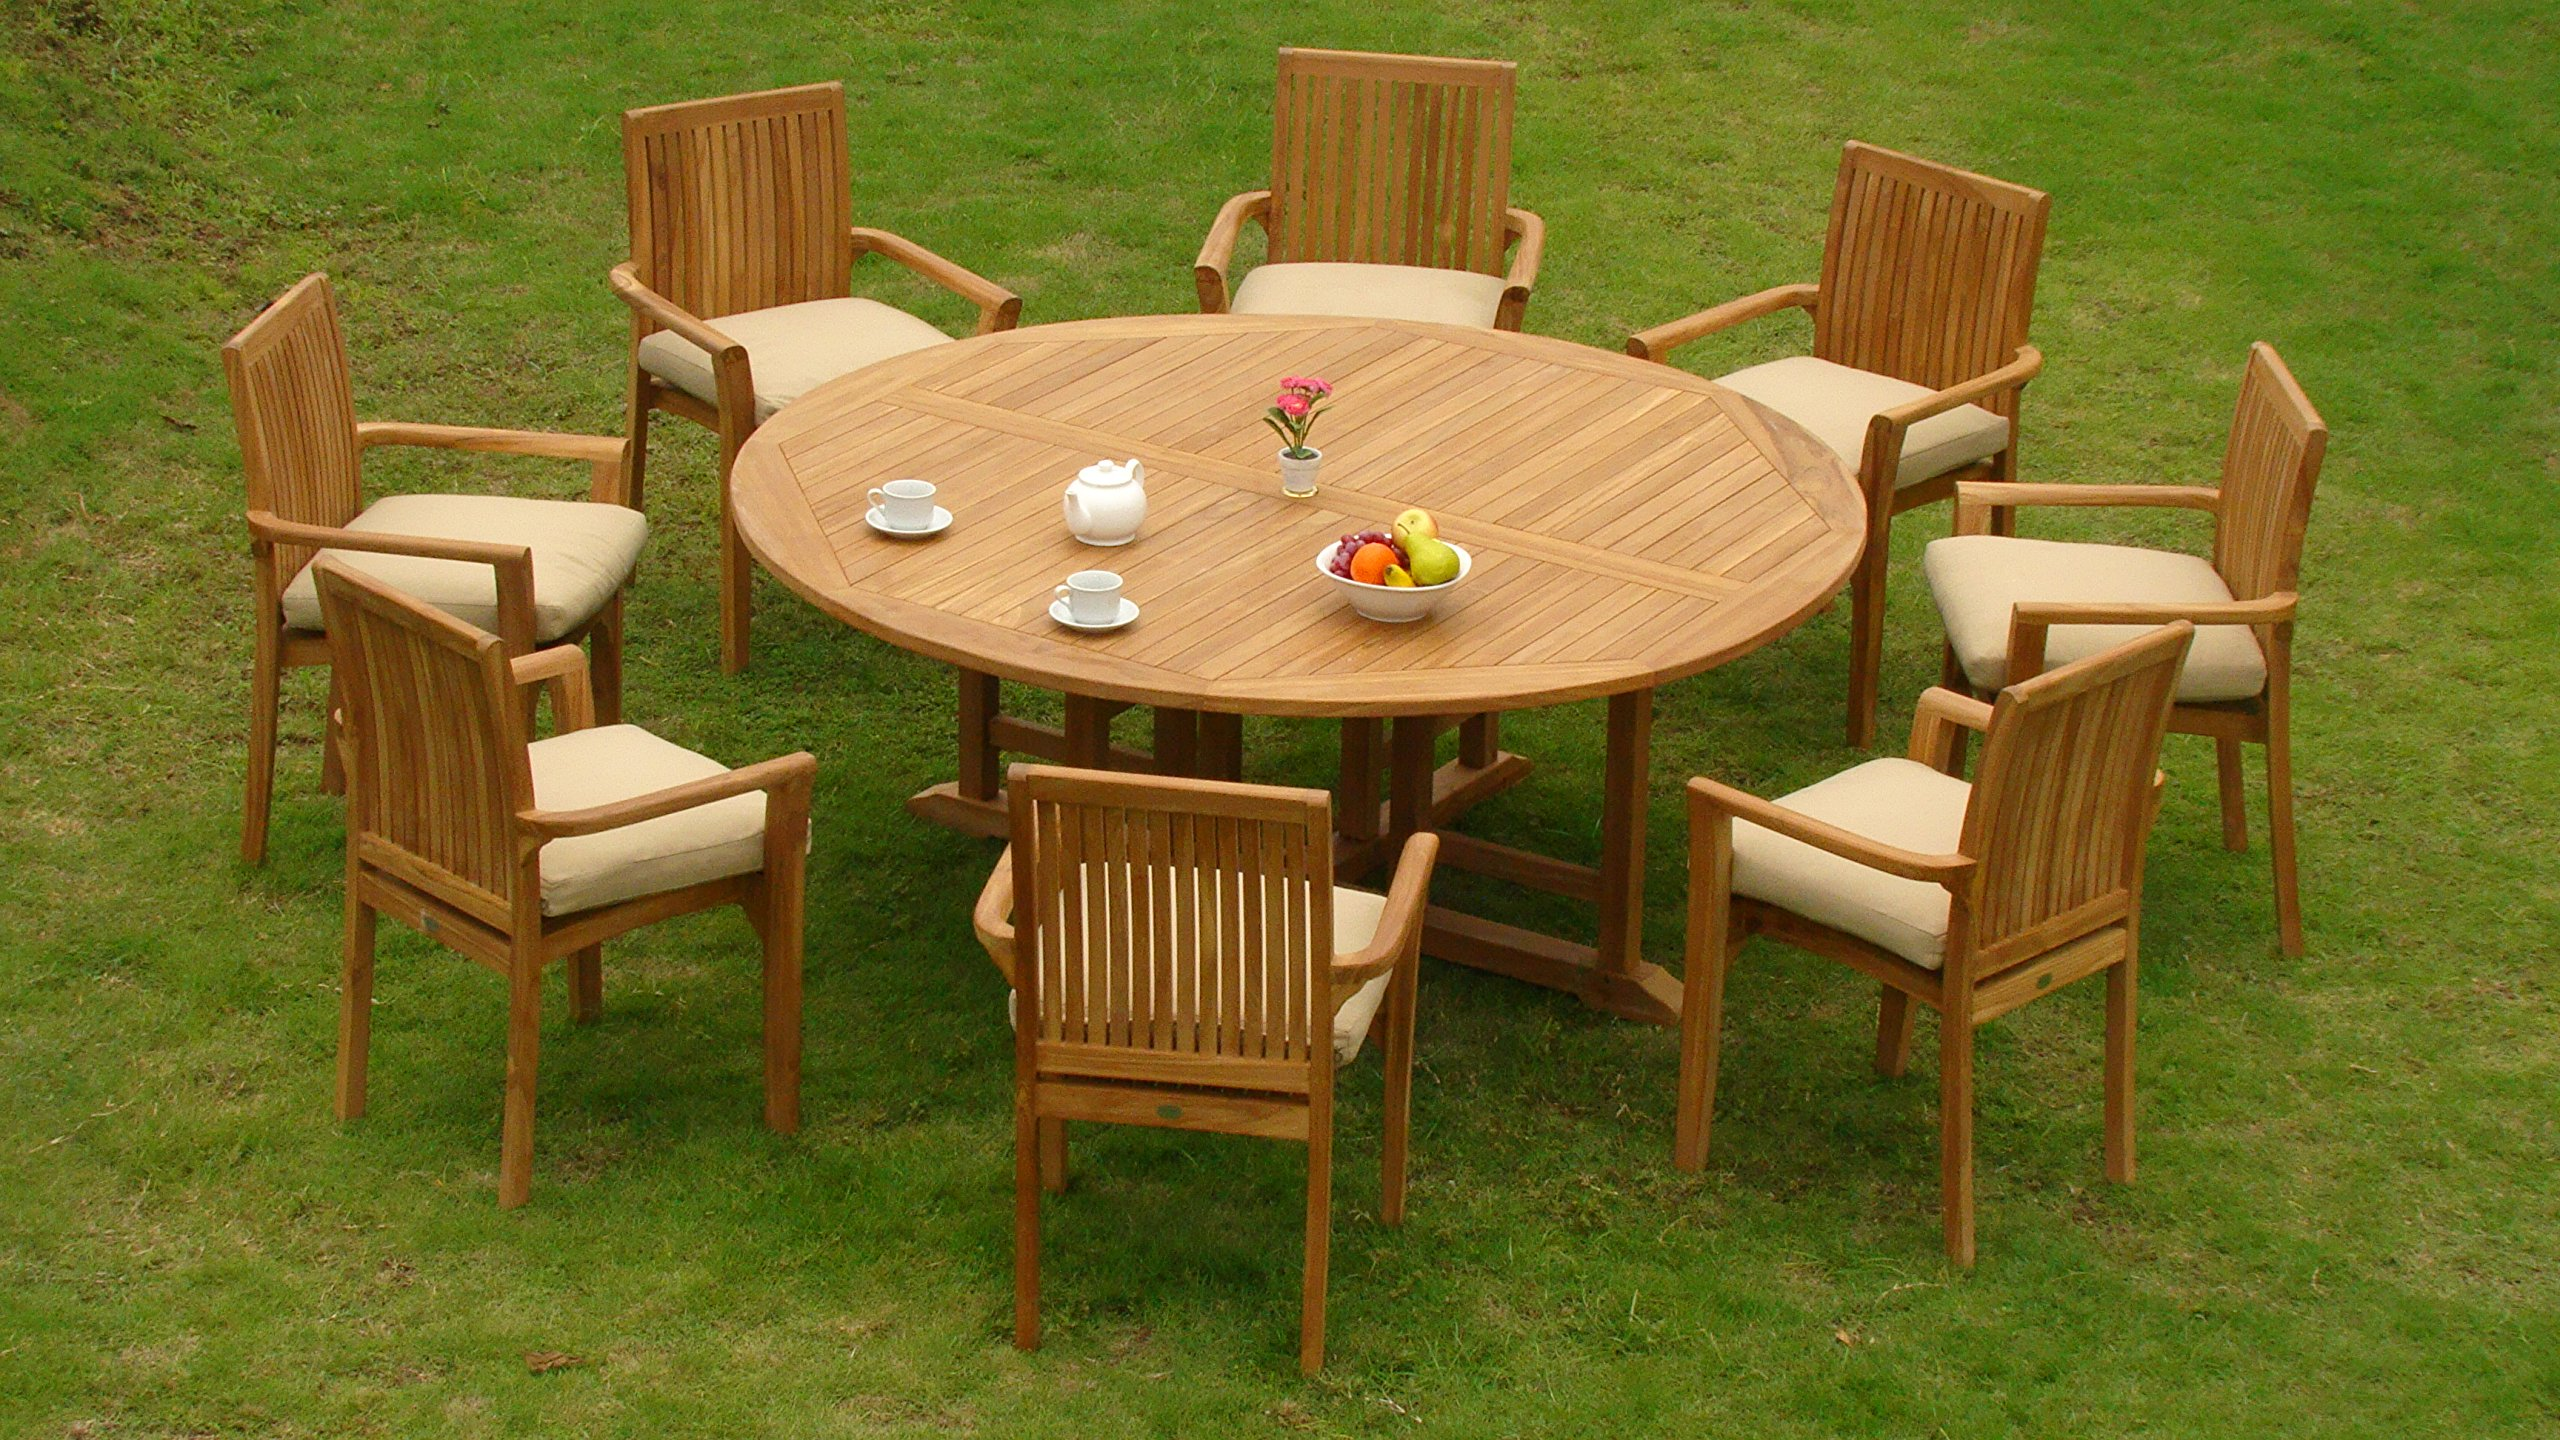 "New 9 Pc Luxurious Grade-A Teak Dining Set -72"" Round Table And 8 Lua Stacking Arm Chairs #WHDSLU7 - Teak wood is an extremely dense course grained hardwood and is widely known for its durability. ADD SUNBRELLA FABRIC CUSHIONS BY SEARCHING ASIN ""B01I4CC166"" or ""Wholesaleteak Dining Cushion"" ON AMAZON, CUSTOM MADE FOR THESE STYLE CHAIRS Table Dimension: 72"" Round Table, 30.5"" H , 2"" Umbrella Hole is in the center of the table. - patio-furniture, dining-sets-patio-funiture, patio - 91Esu0VCpaL -"